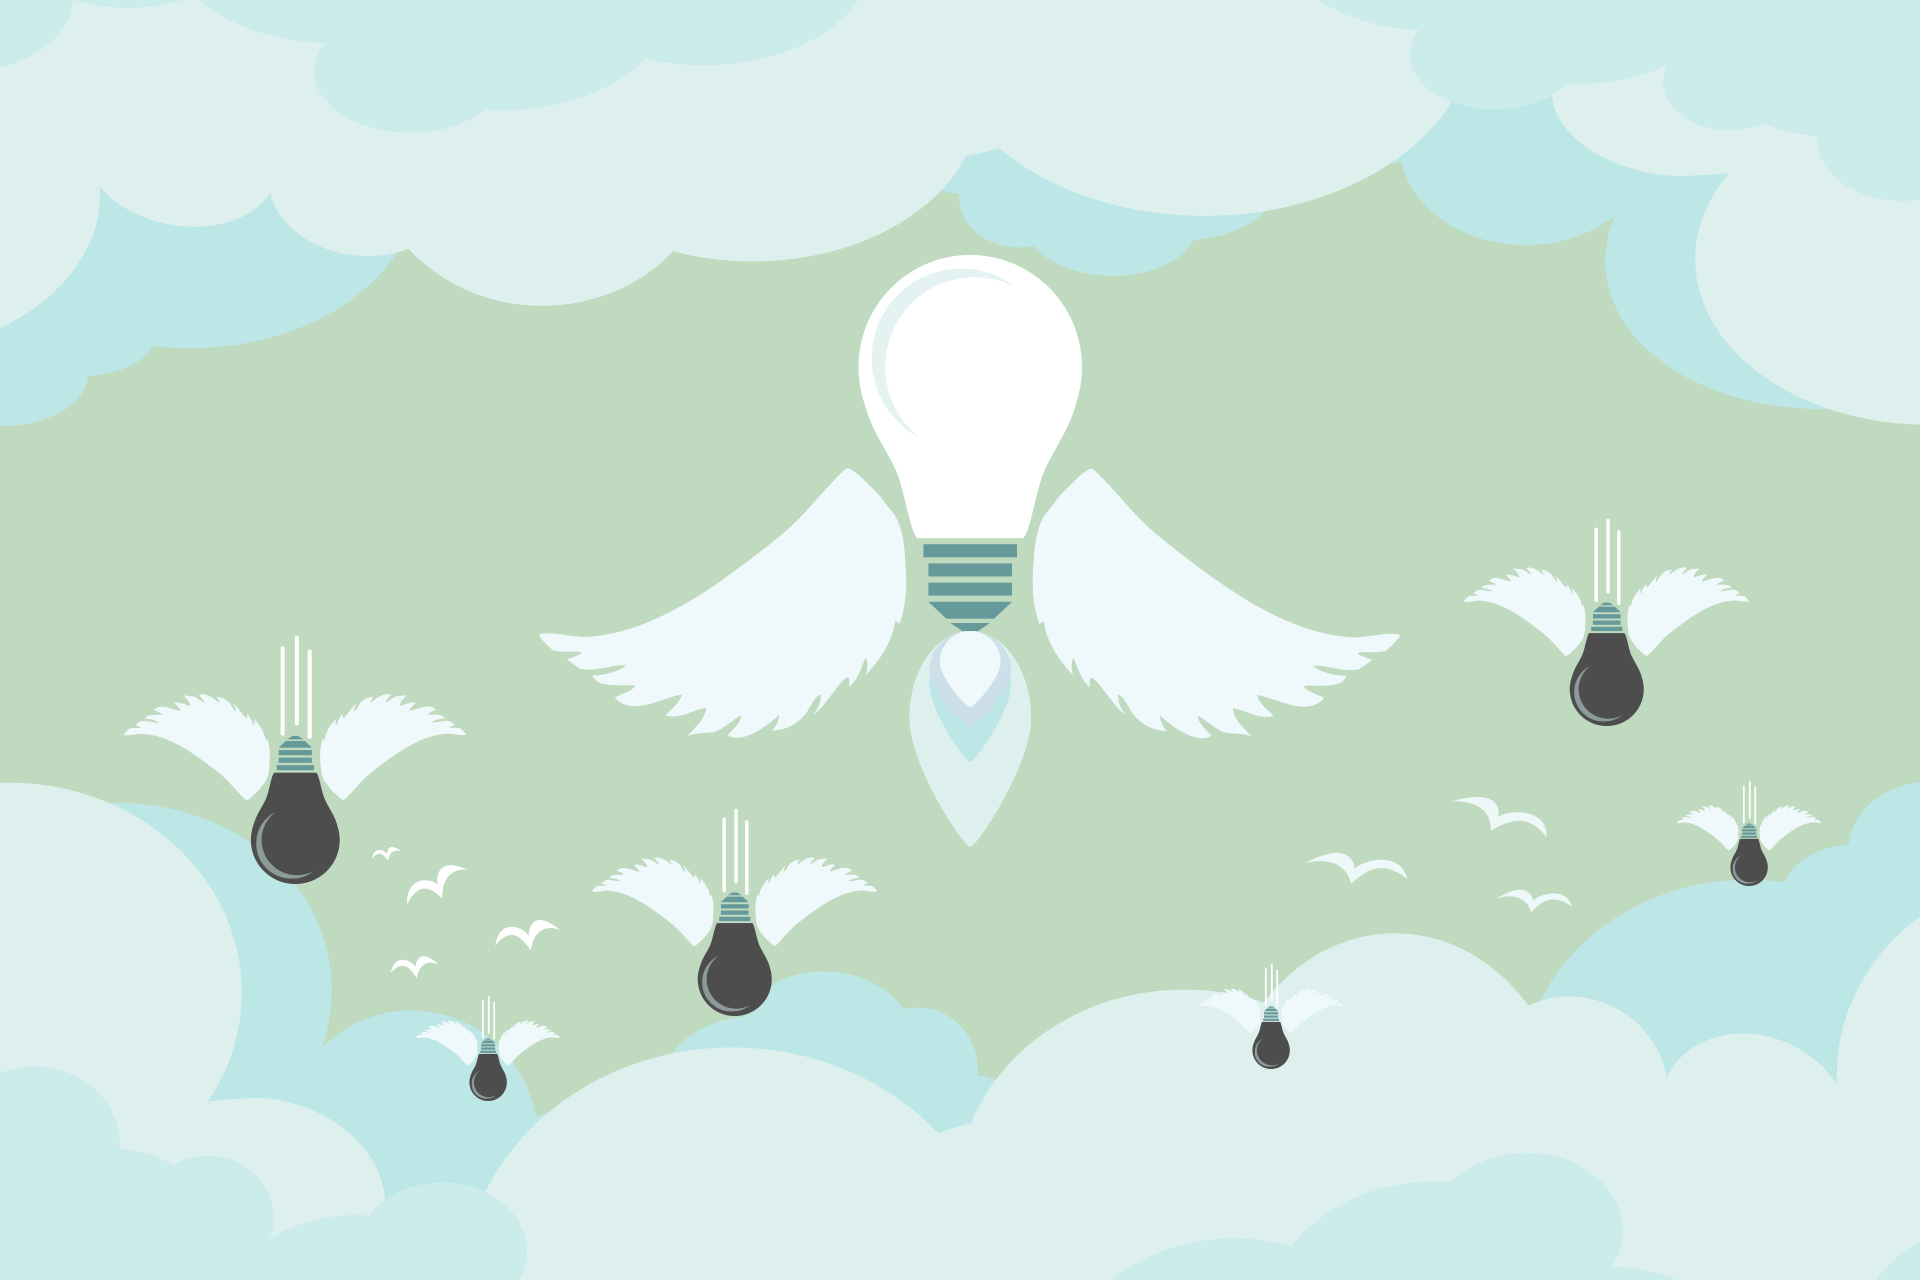 But 95% of startups fail!—5 reasons startup methods are still the best choice